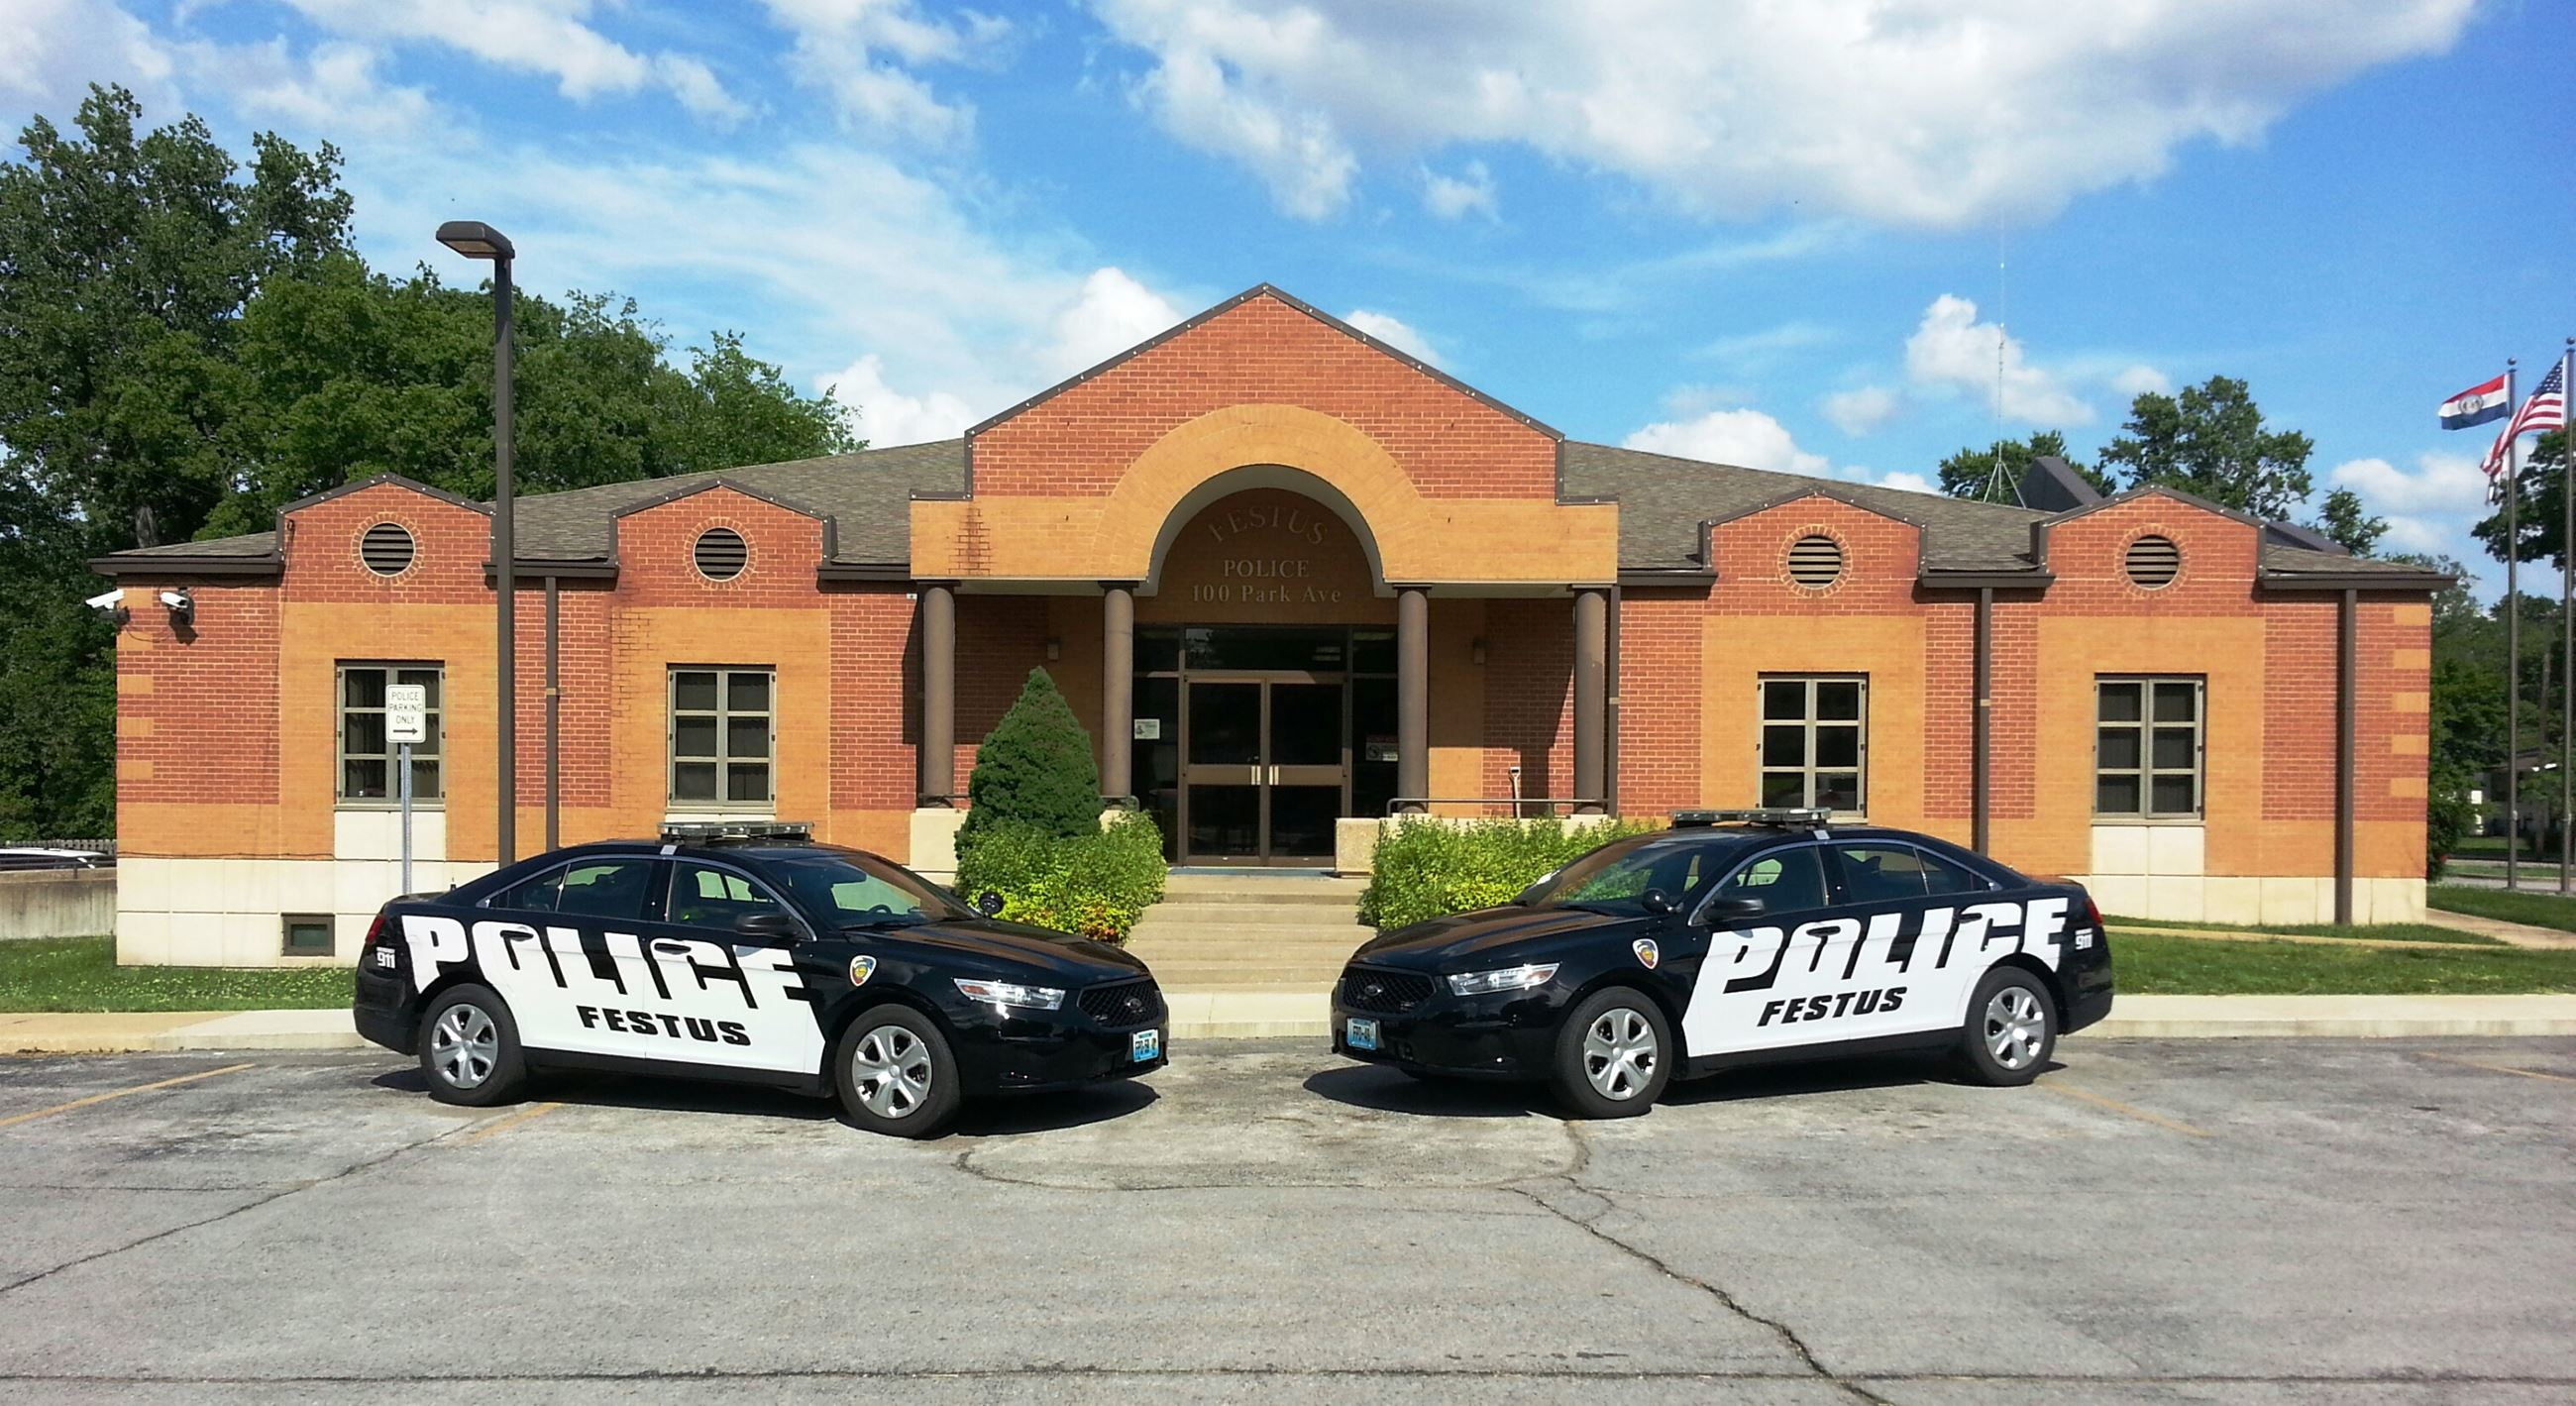 Festus Police Cars in Front of Station